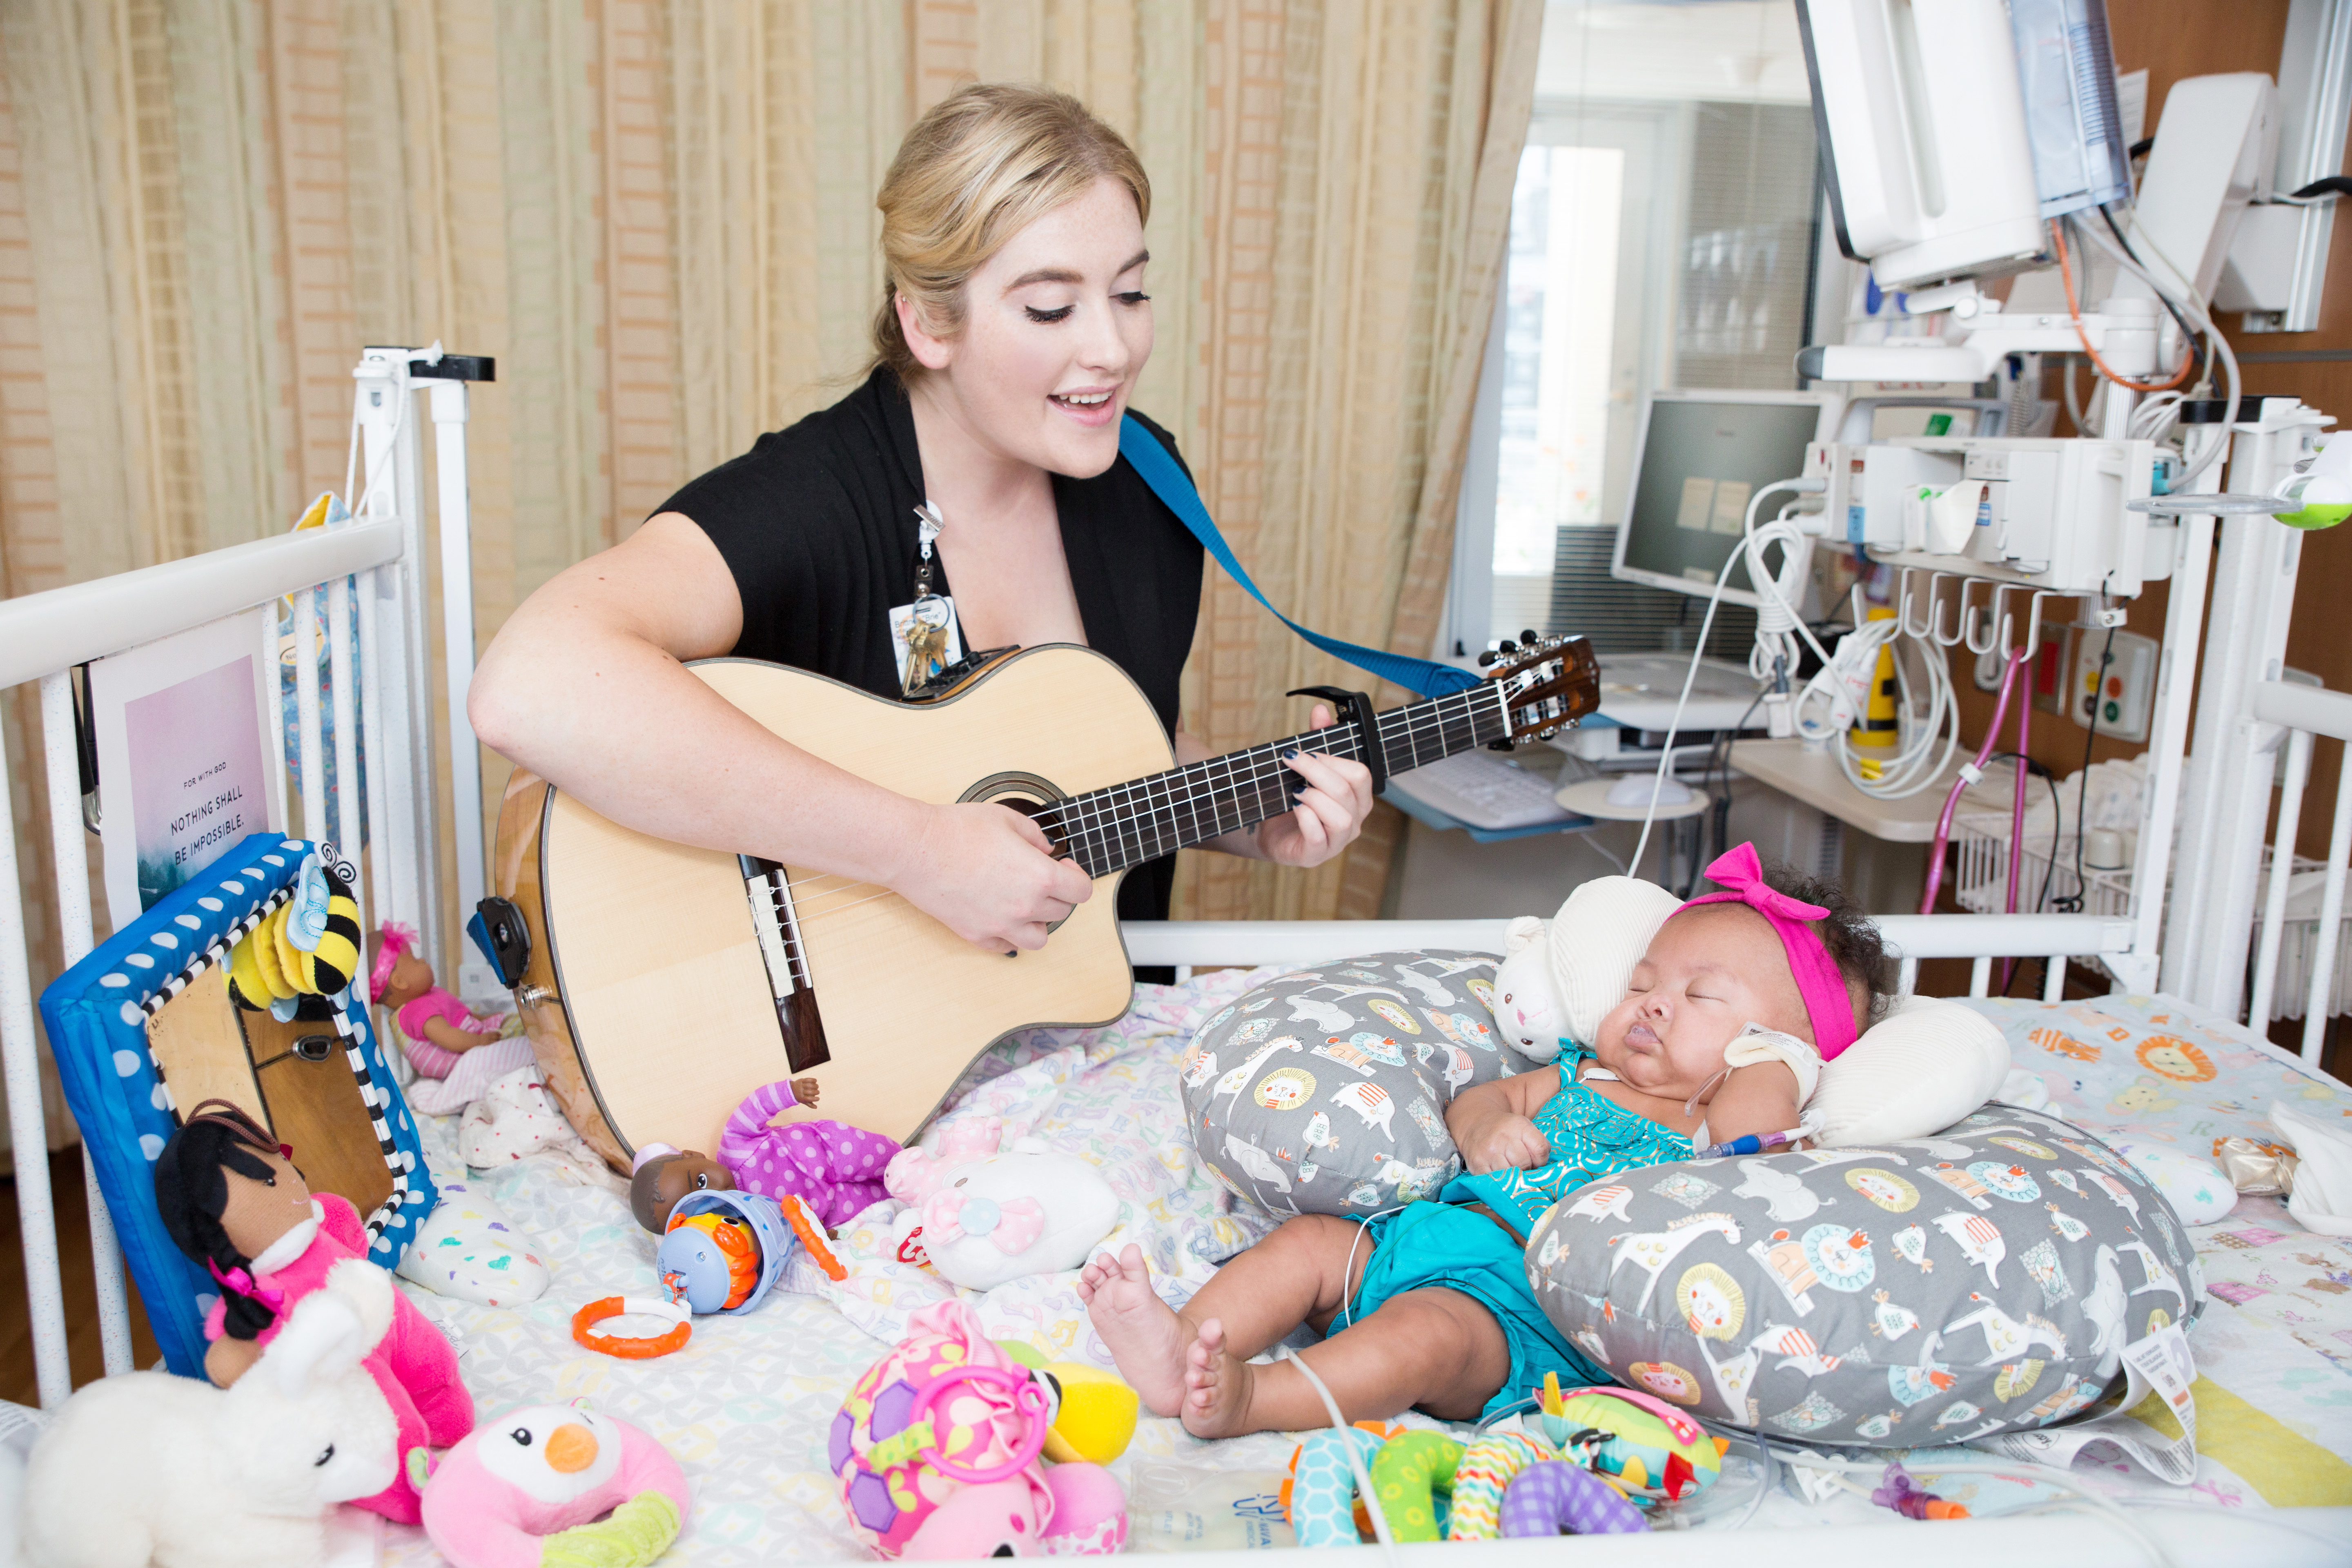 Music therapist with guitar singing to patient